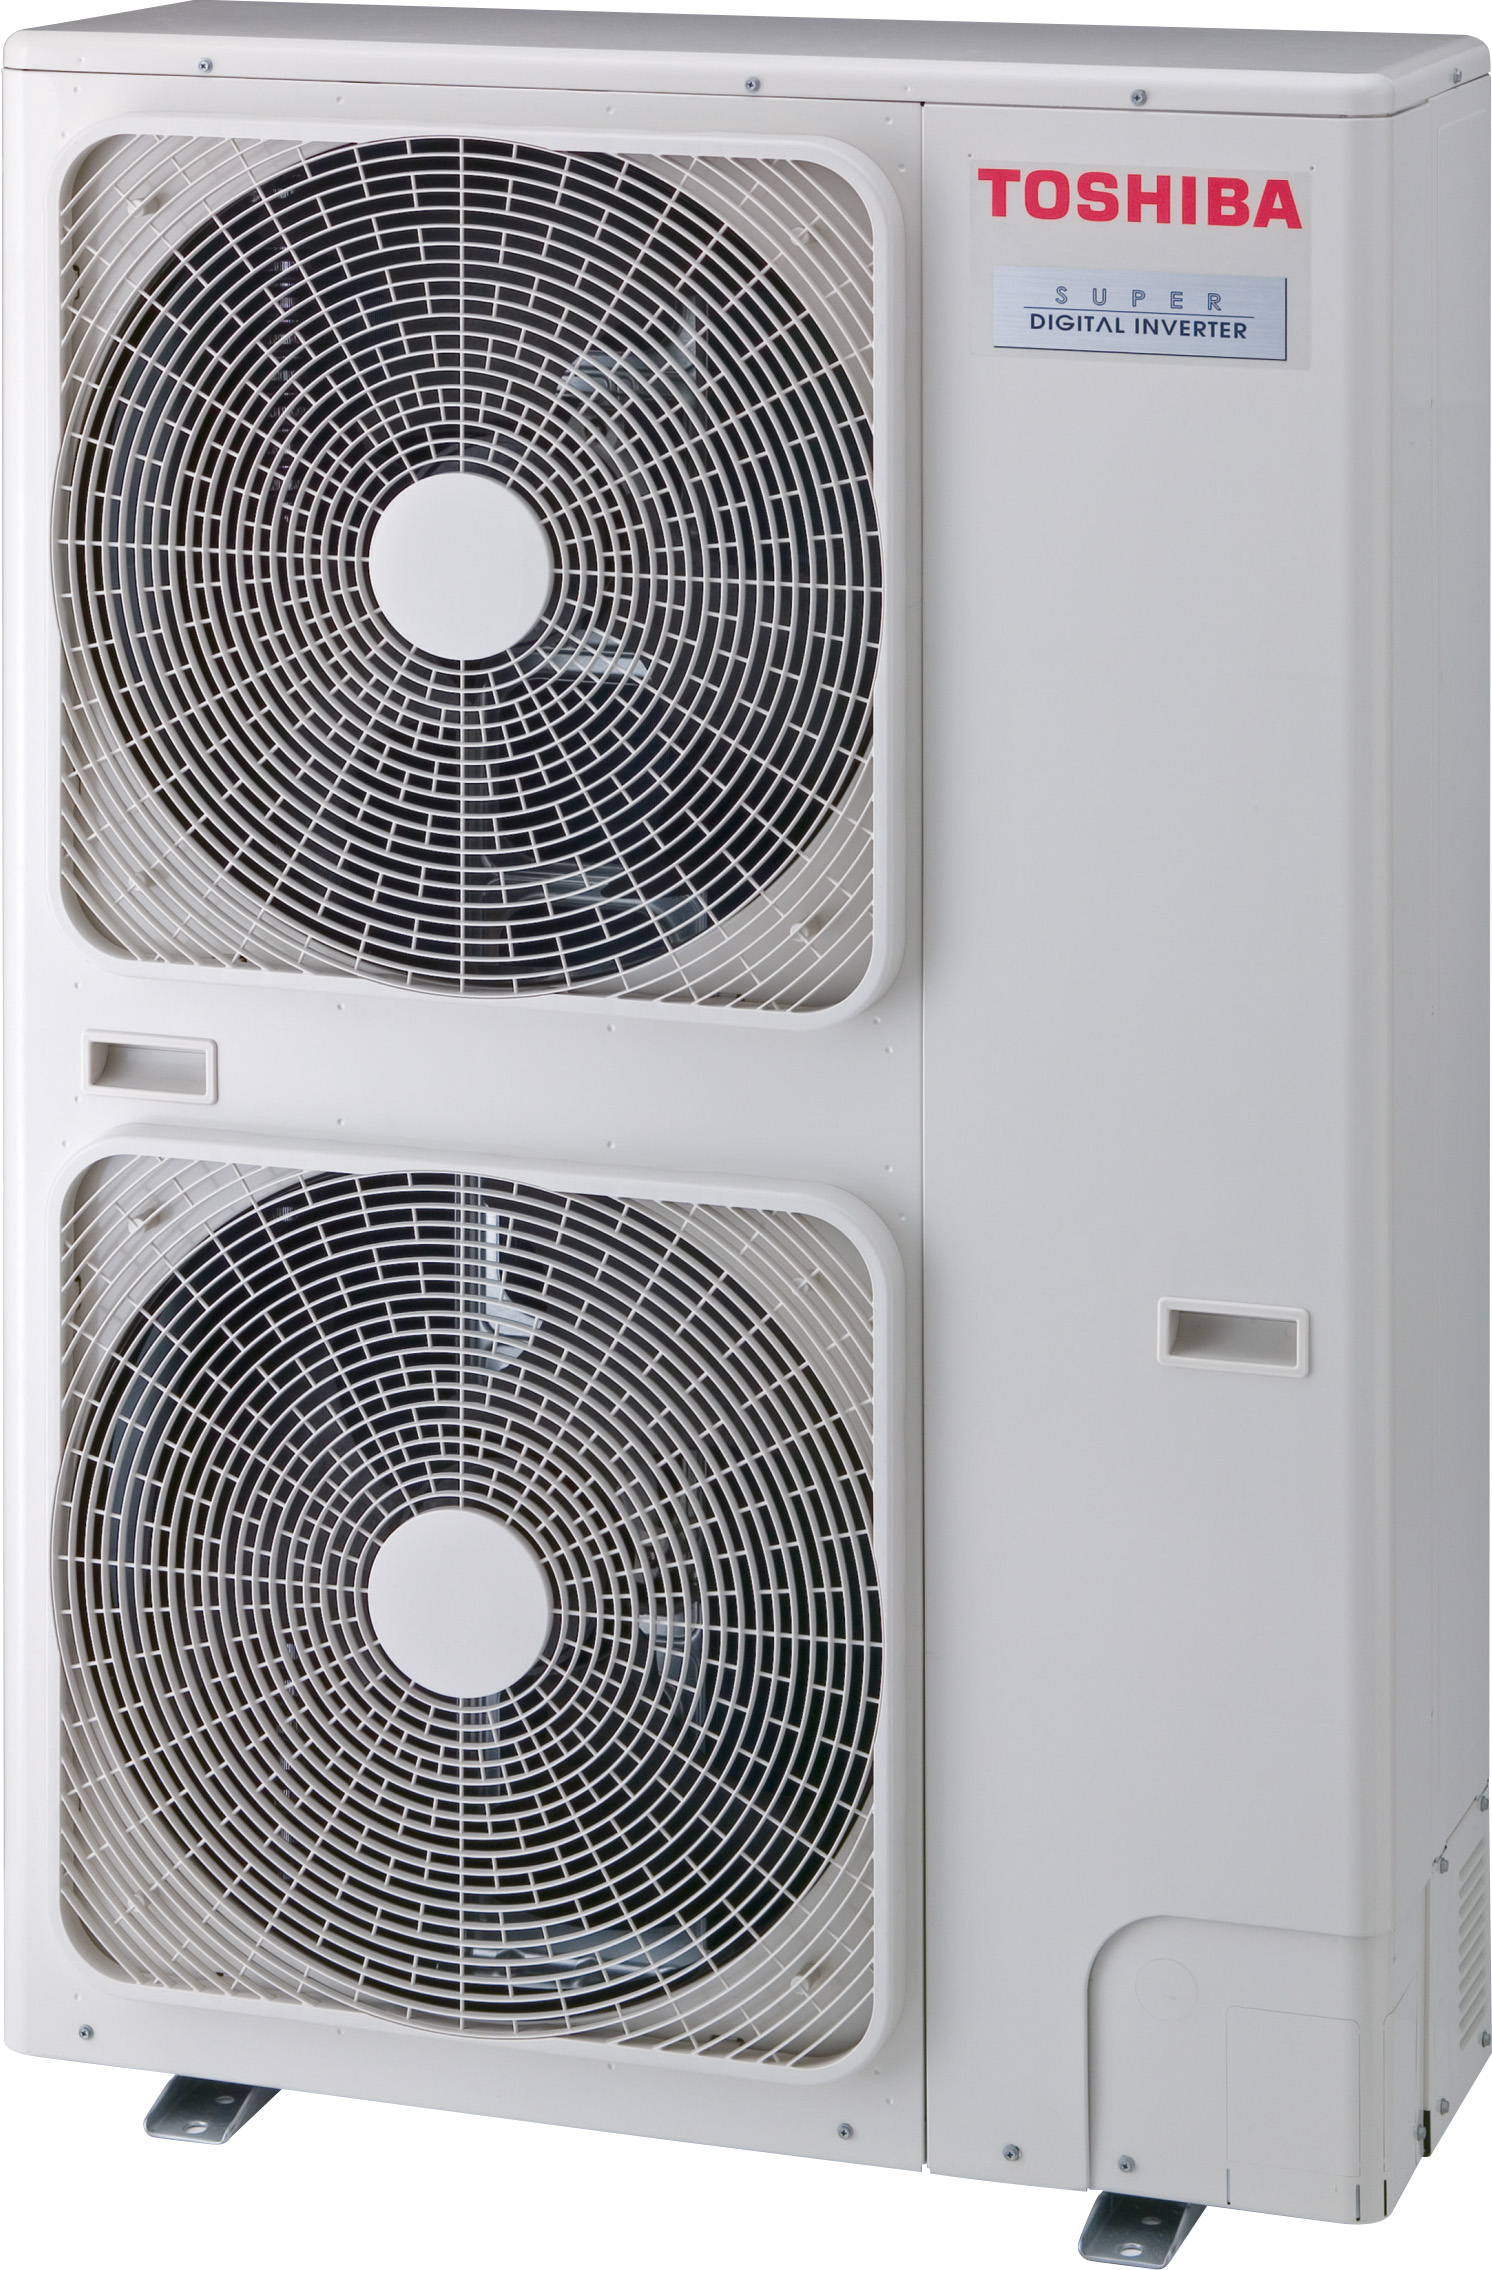 Toshiba Air Conditioners Air And Water